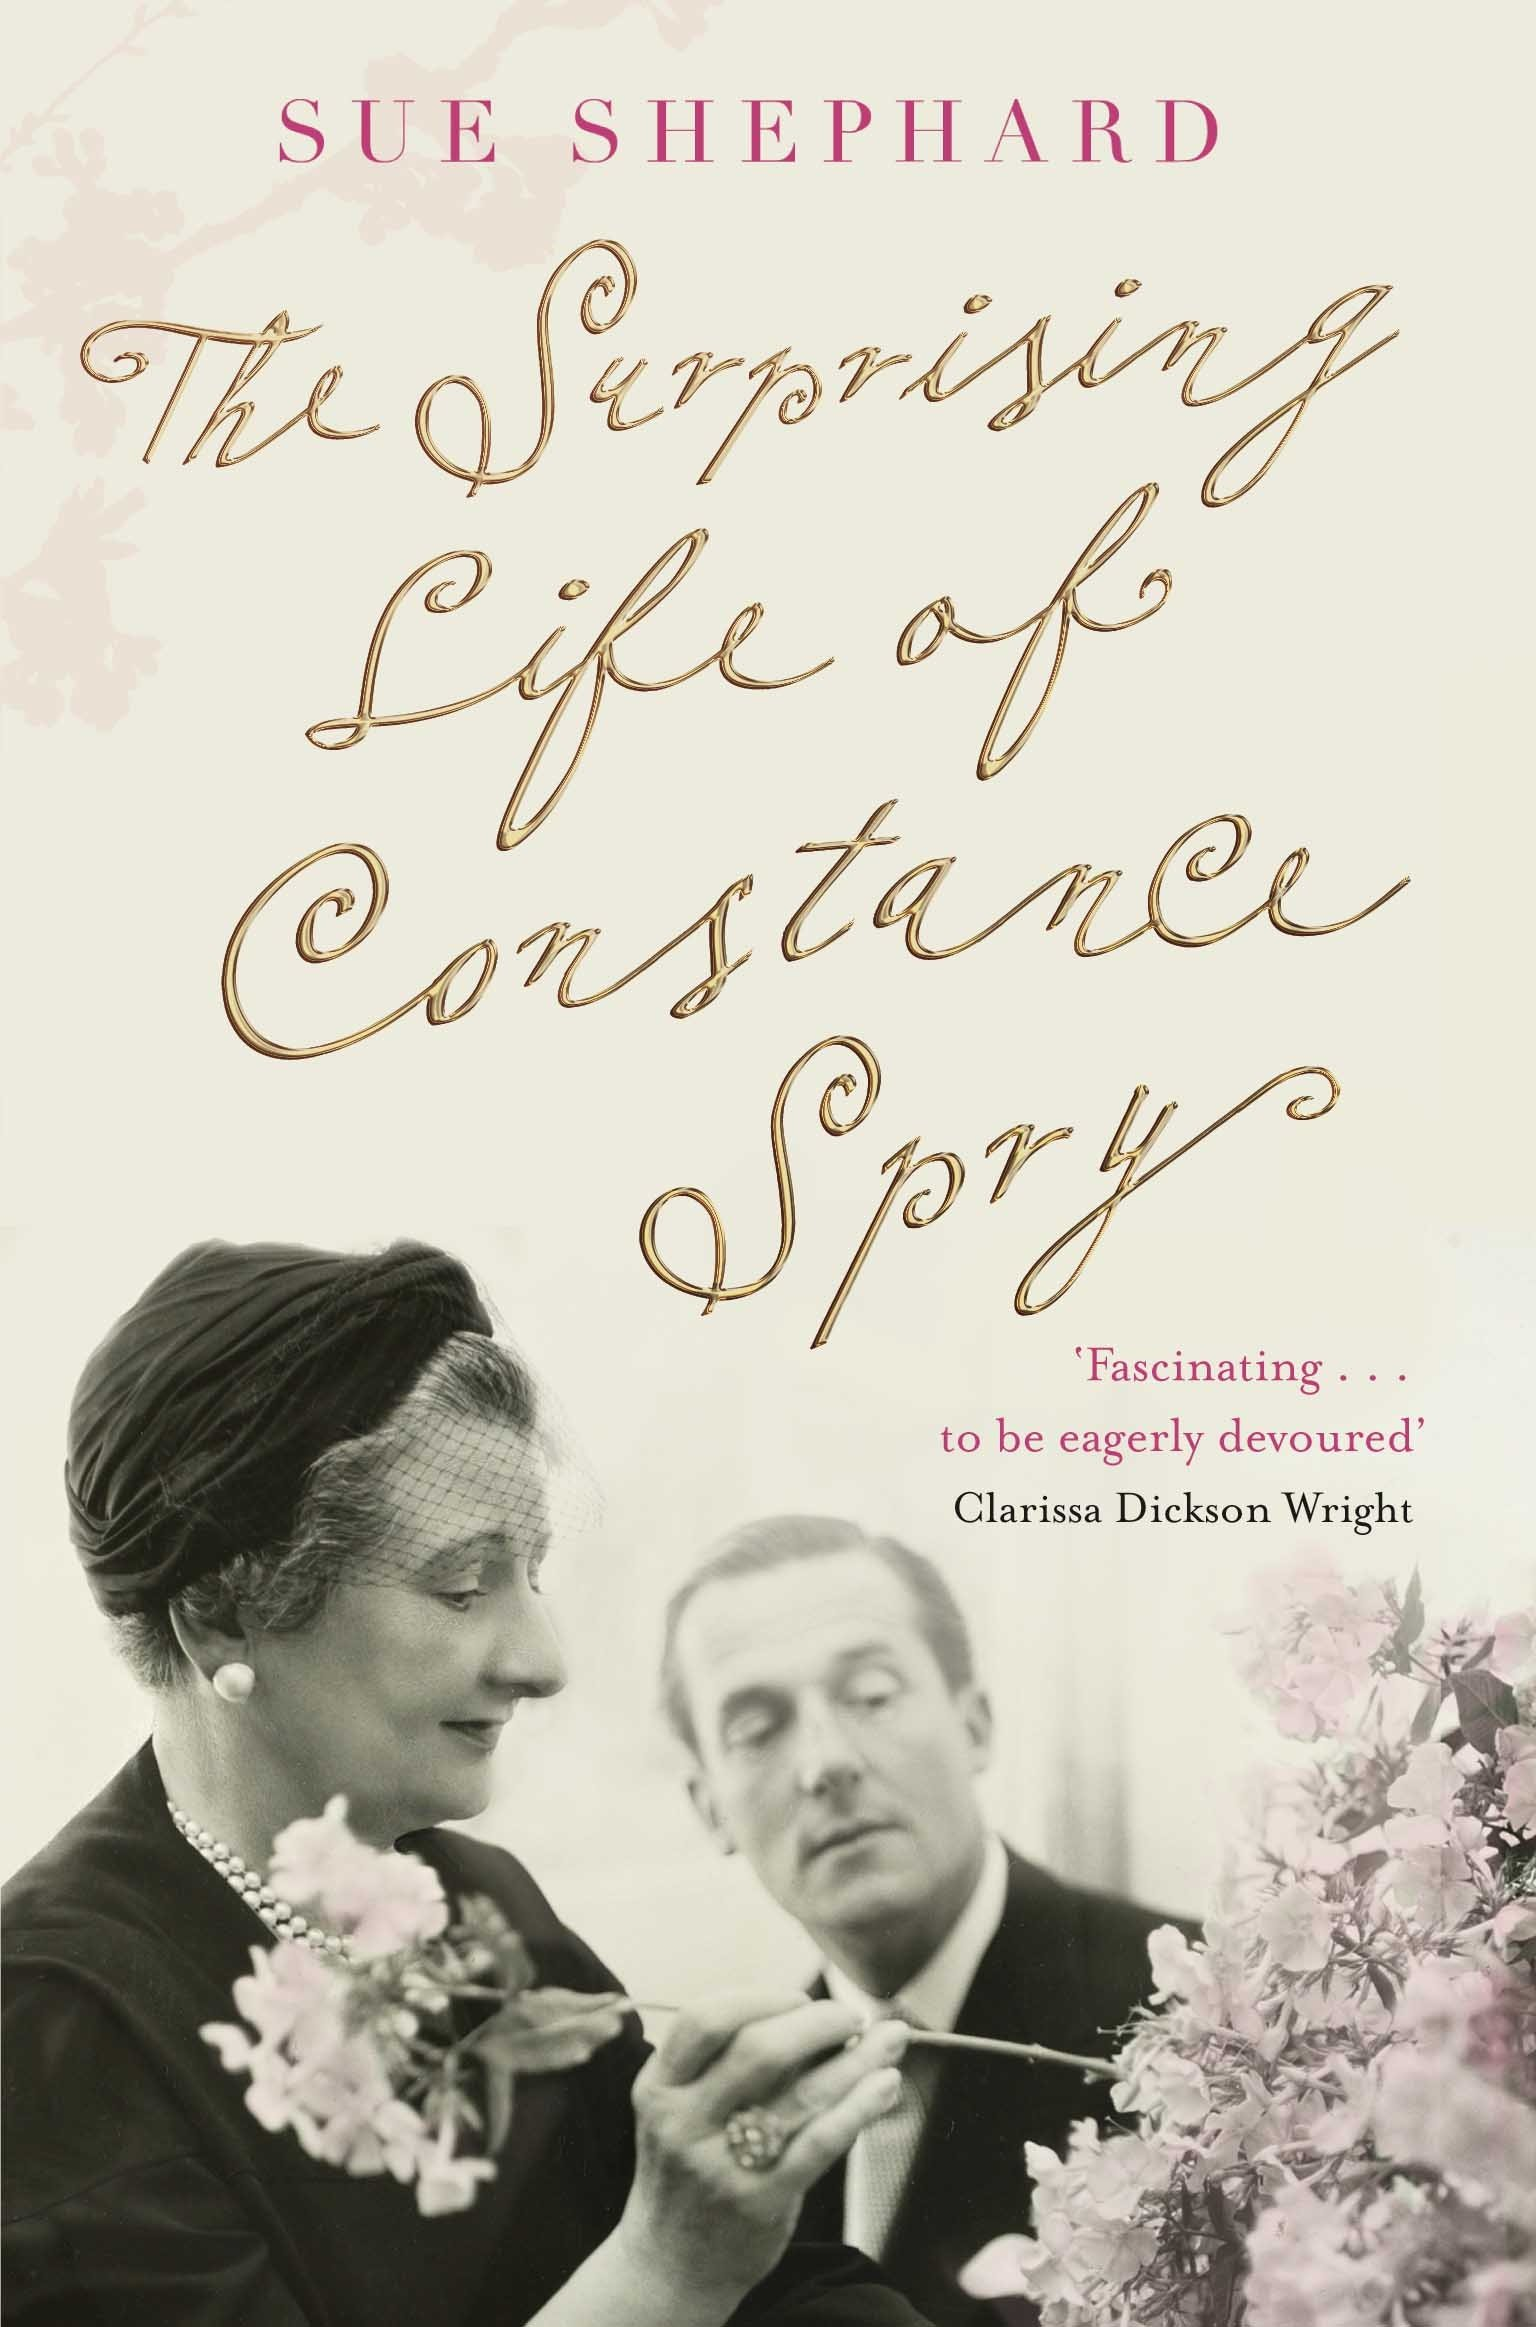 The Surprising Life Of Constance Spry: Amazon: Sue Shephard:  9780330544221: Books